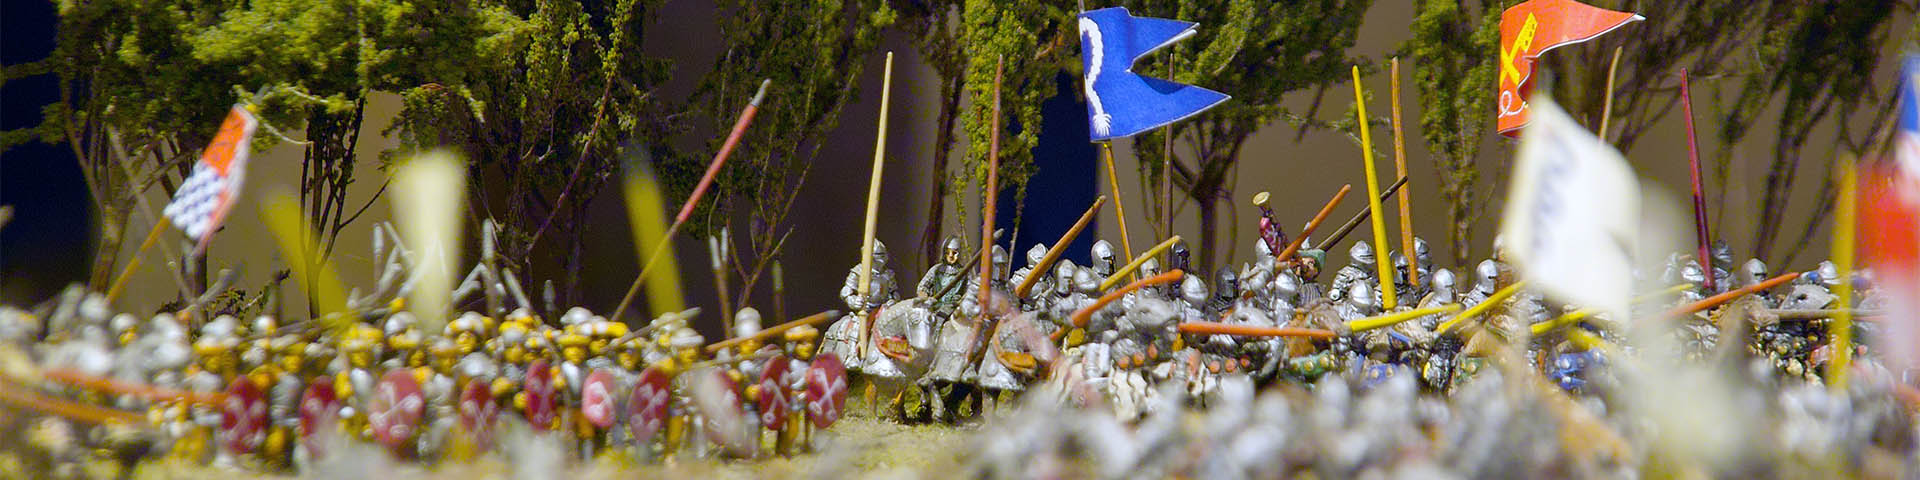 Museo della Battaglia e di Anghiari, scale model of the battle